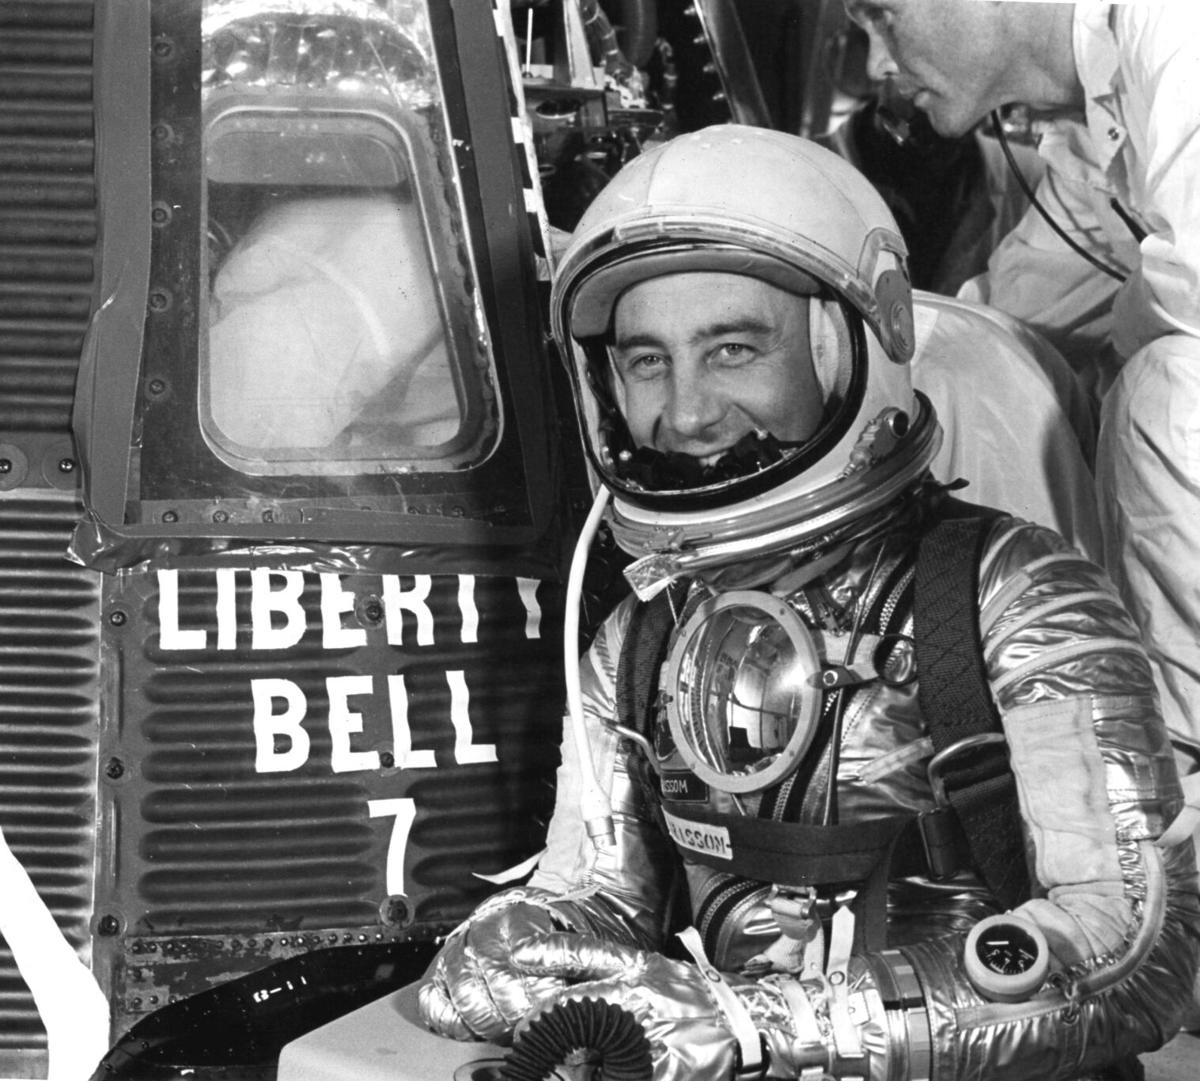 Grissom prepares to enter Liberty Bell 7